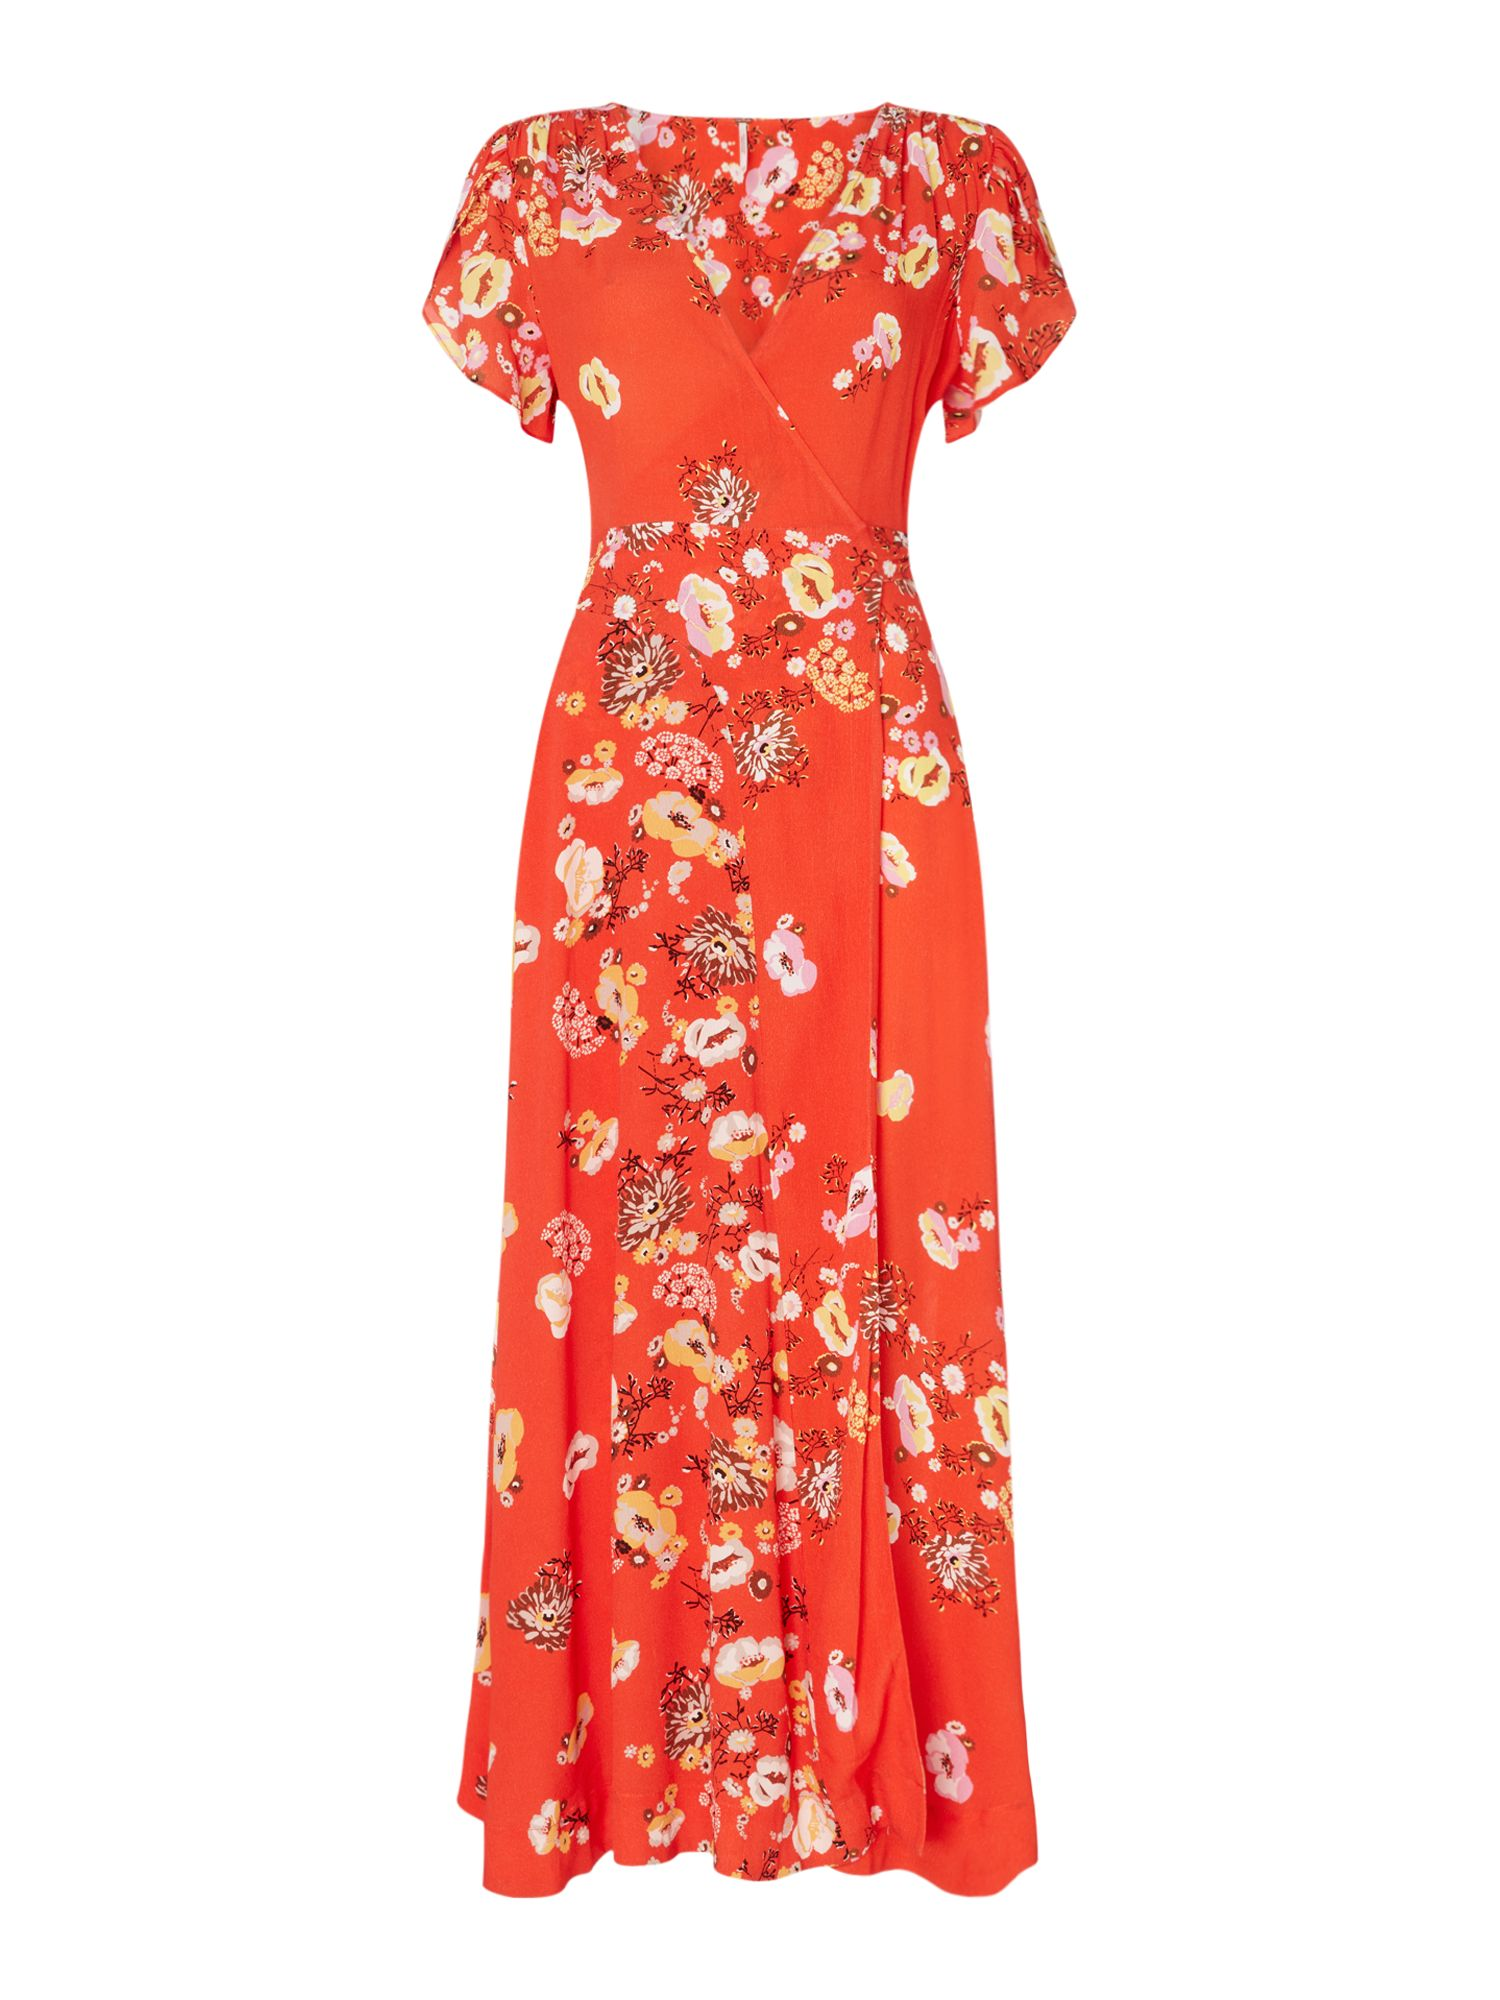 Free People Jess Cap Sleeve Wrap Floral Maxi Dress, Red